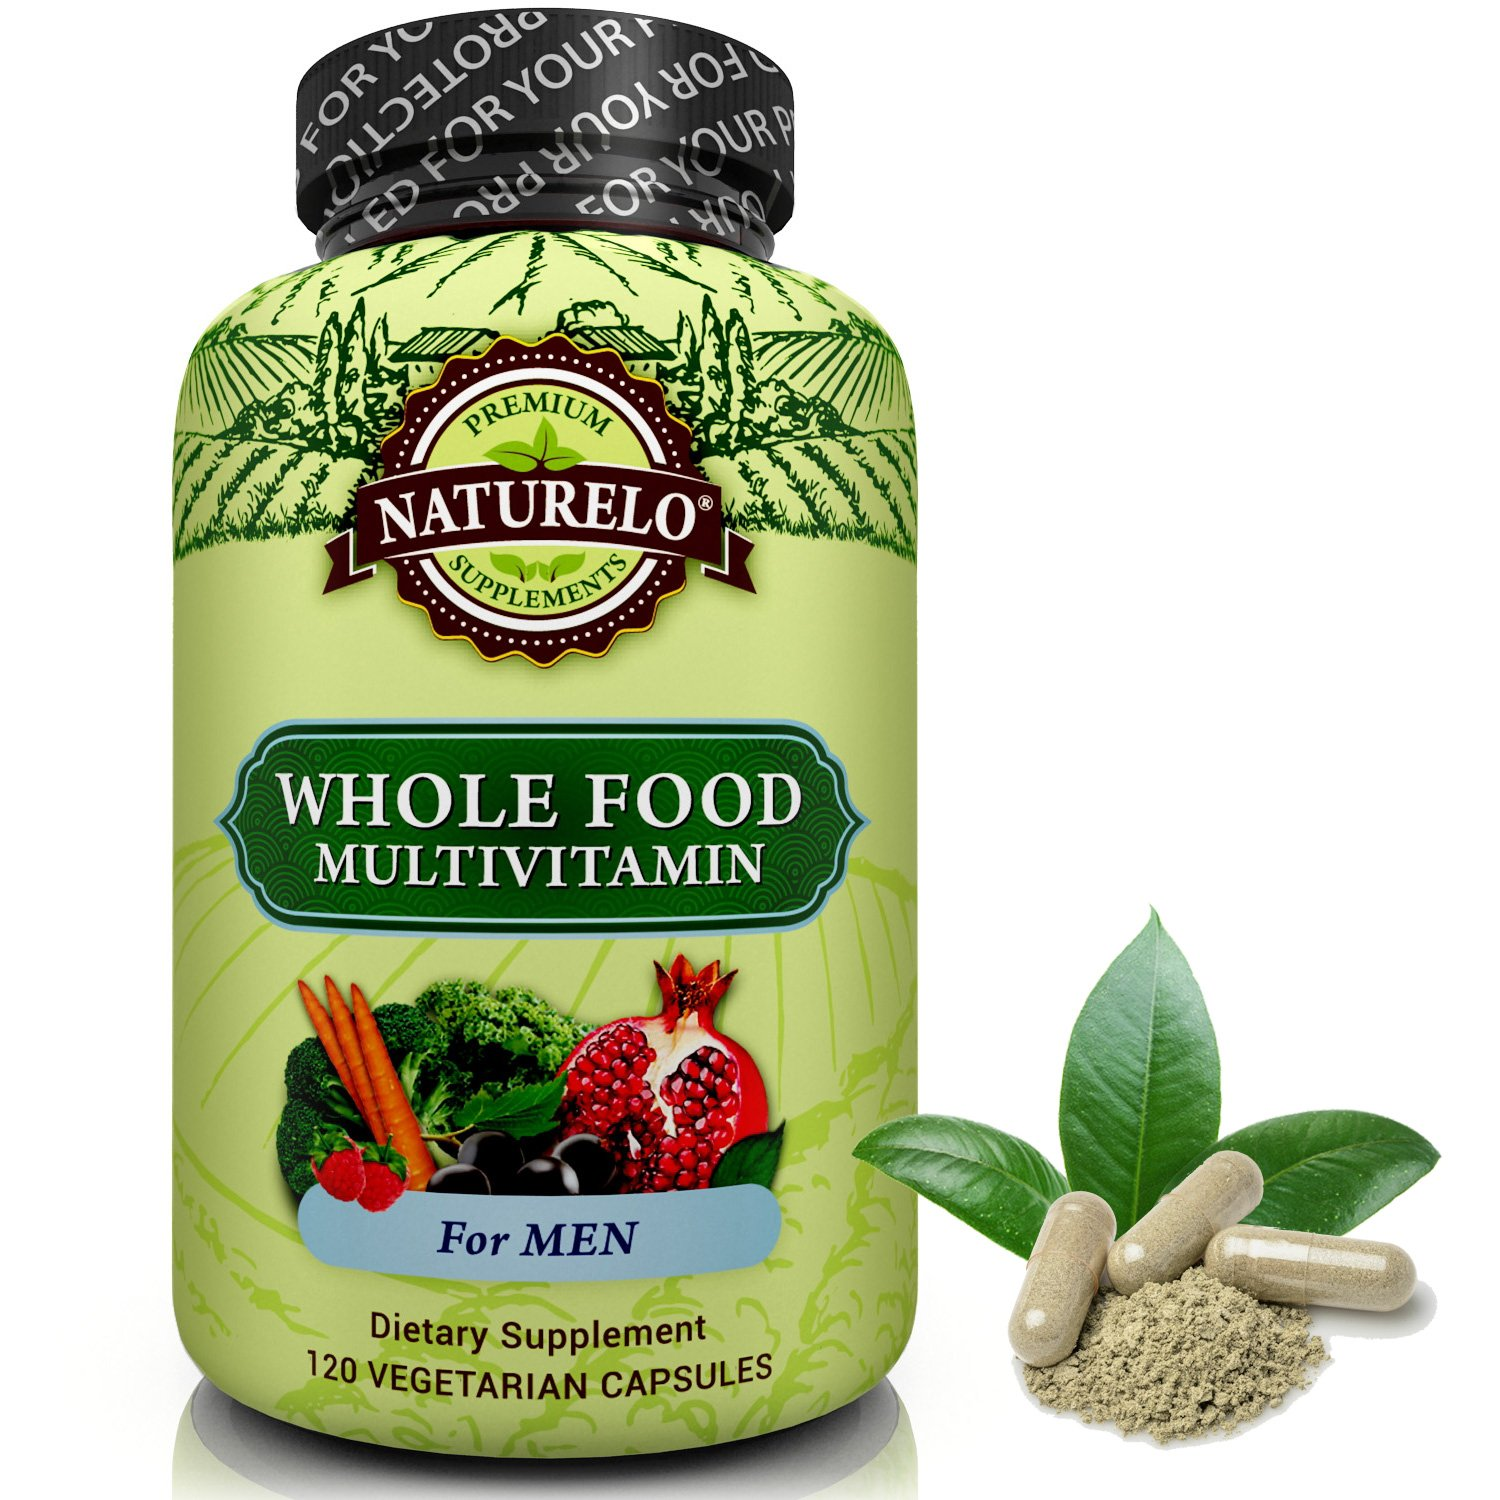 NATURELO Whole Food Multivitamin for Men - #1 Ranked - with Natural Vitamins, Minerals, Organic Extracts - Vegan Vegetarian - Best for Energy, Brain, Heart and Eye Health - 120 Capsules